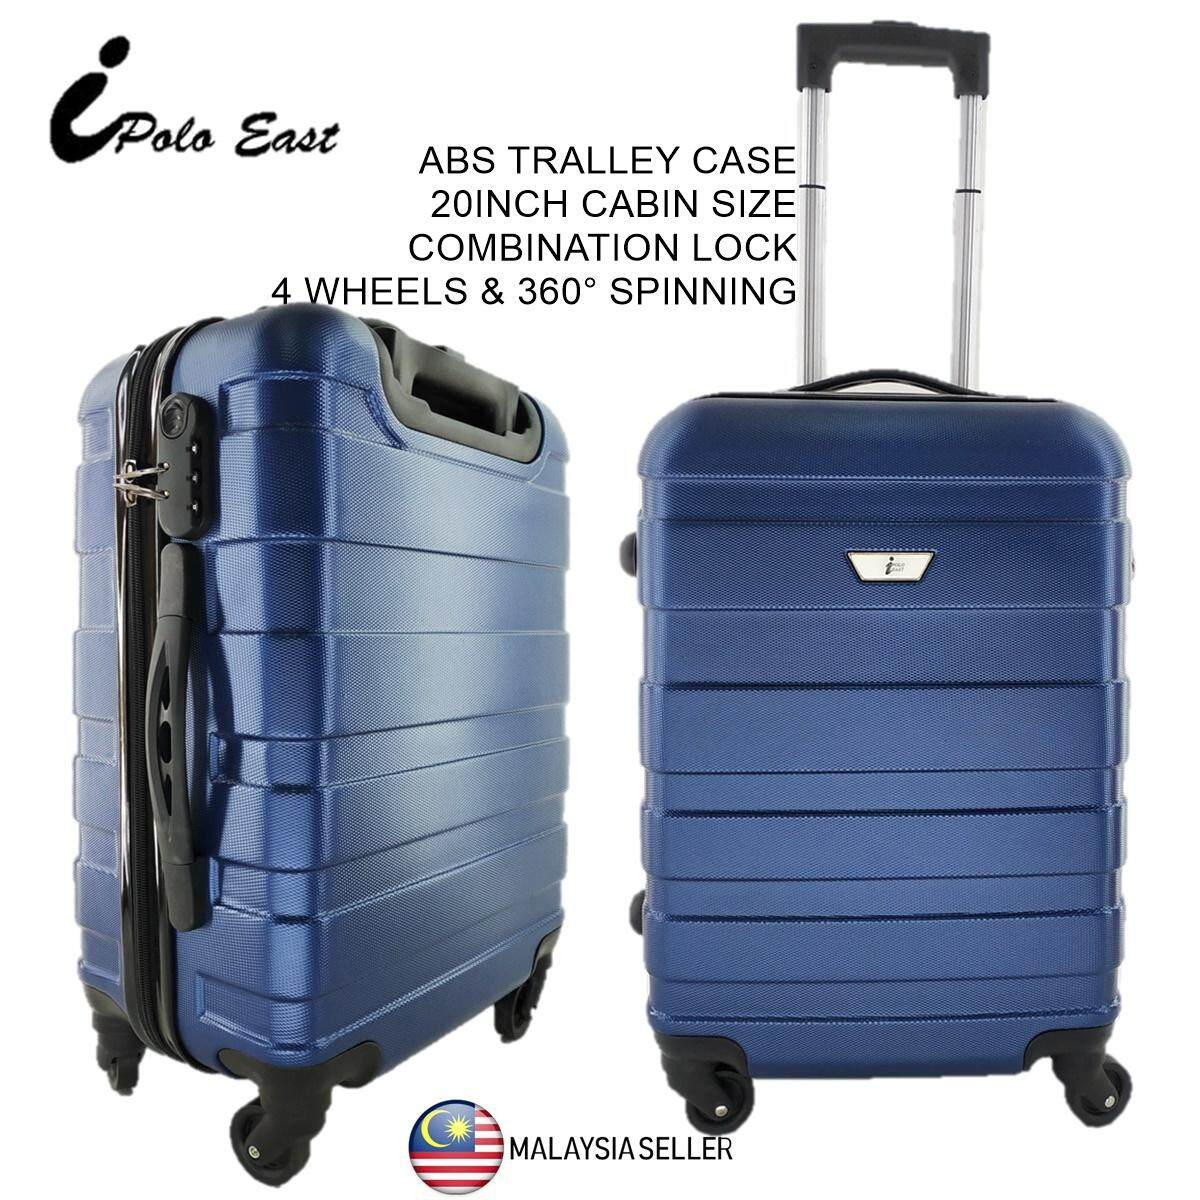 a6e63dbba9f3 [OFFER] IPOLO EAST TRAVEL LUGGAGE 20